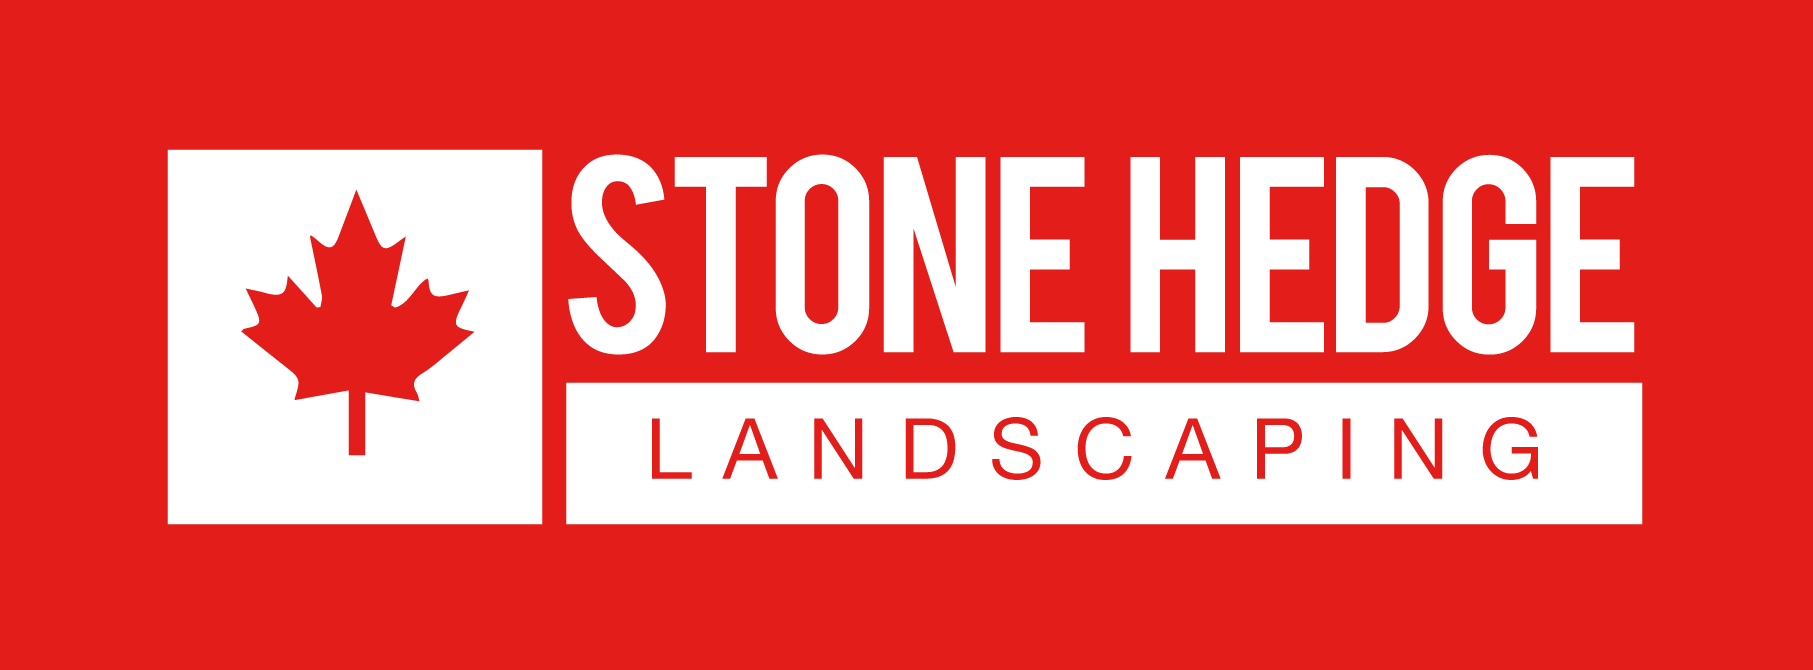 Stone Hedge Landscaping